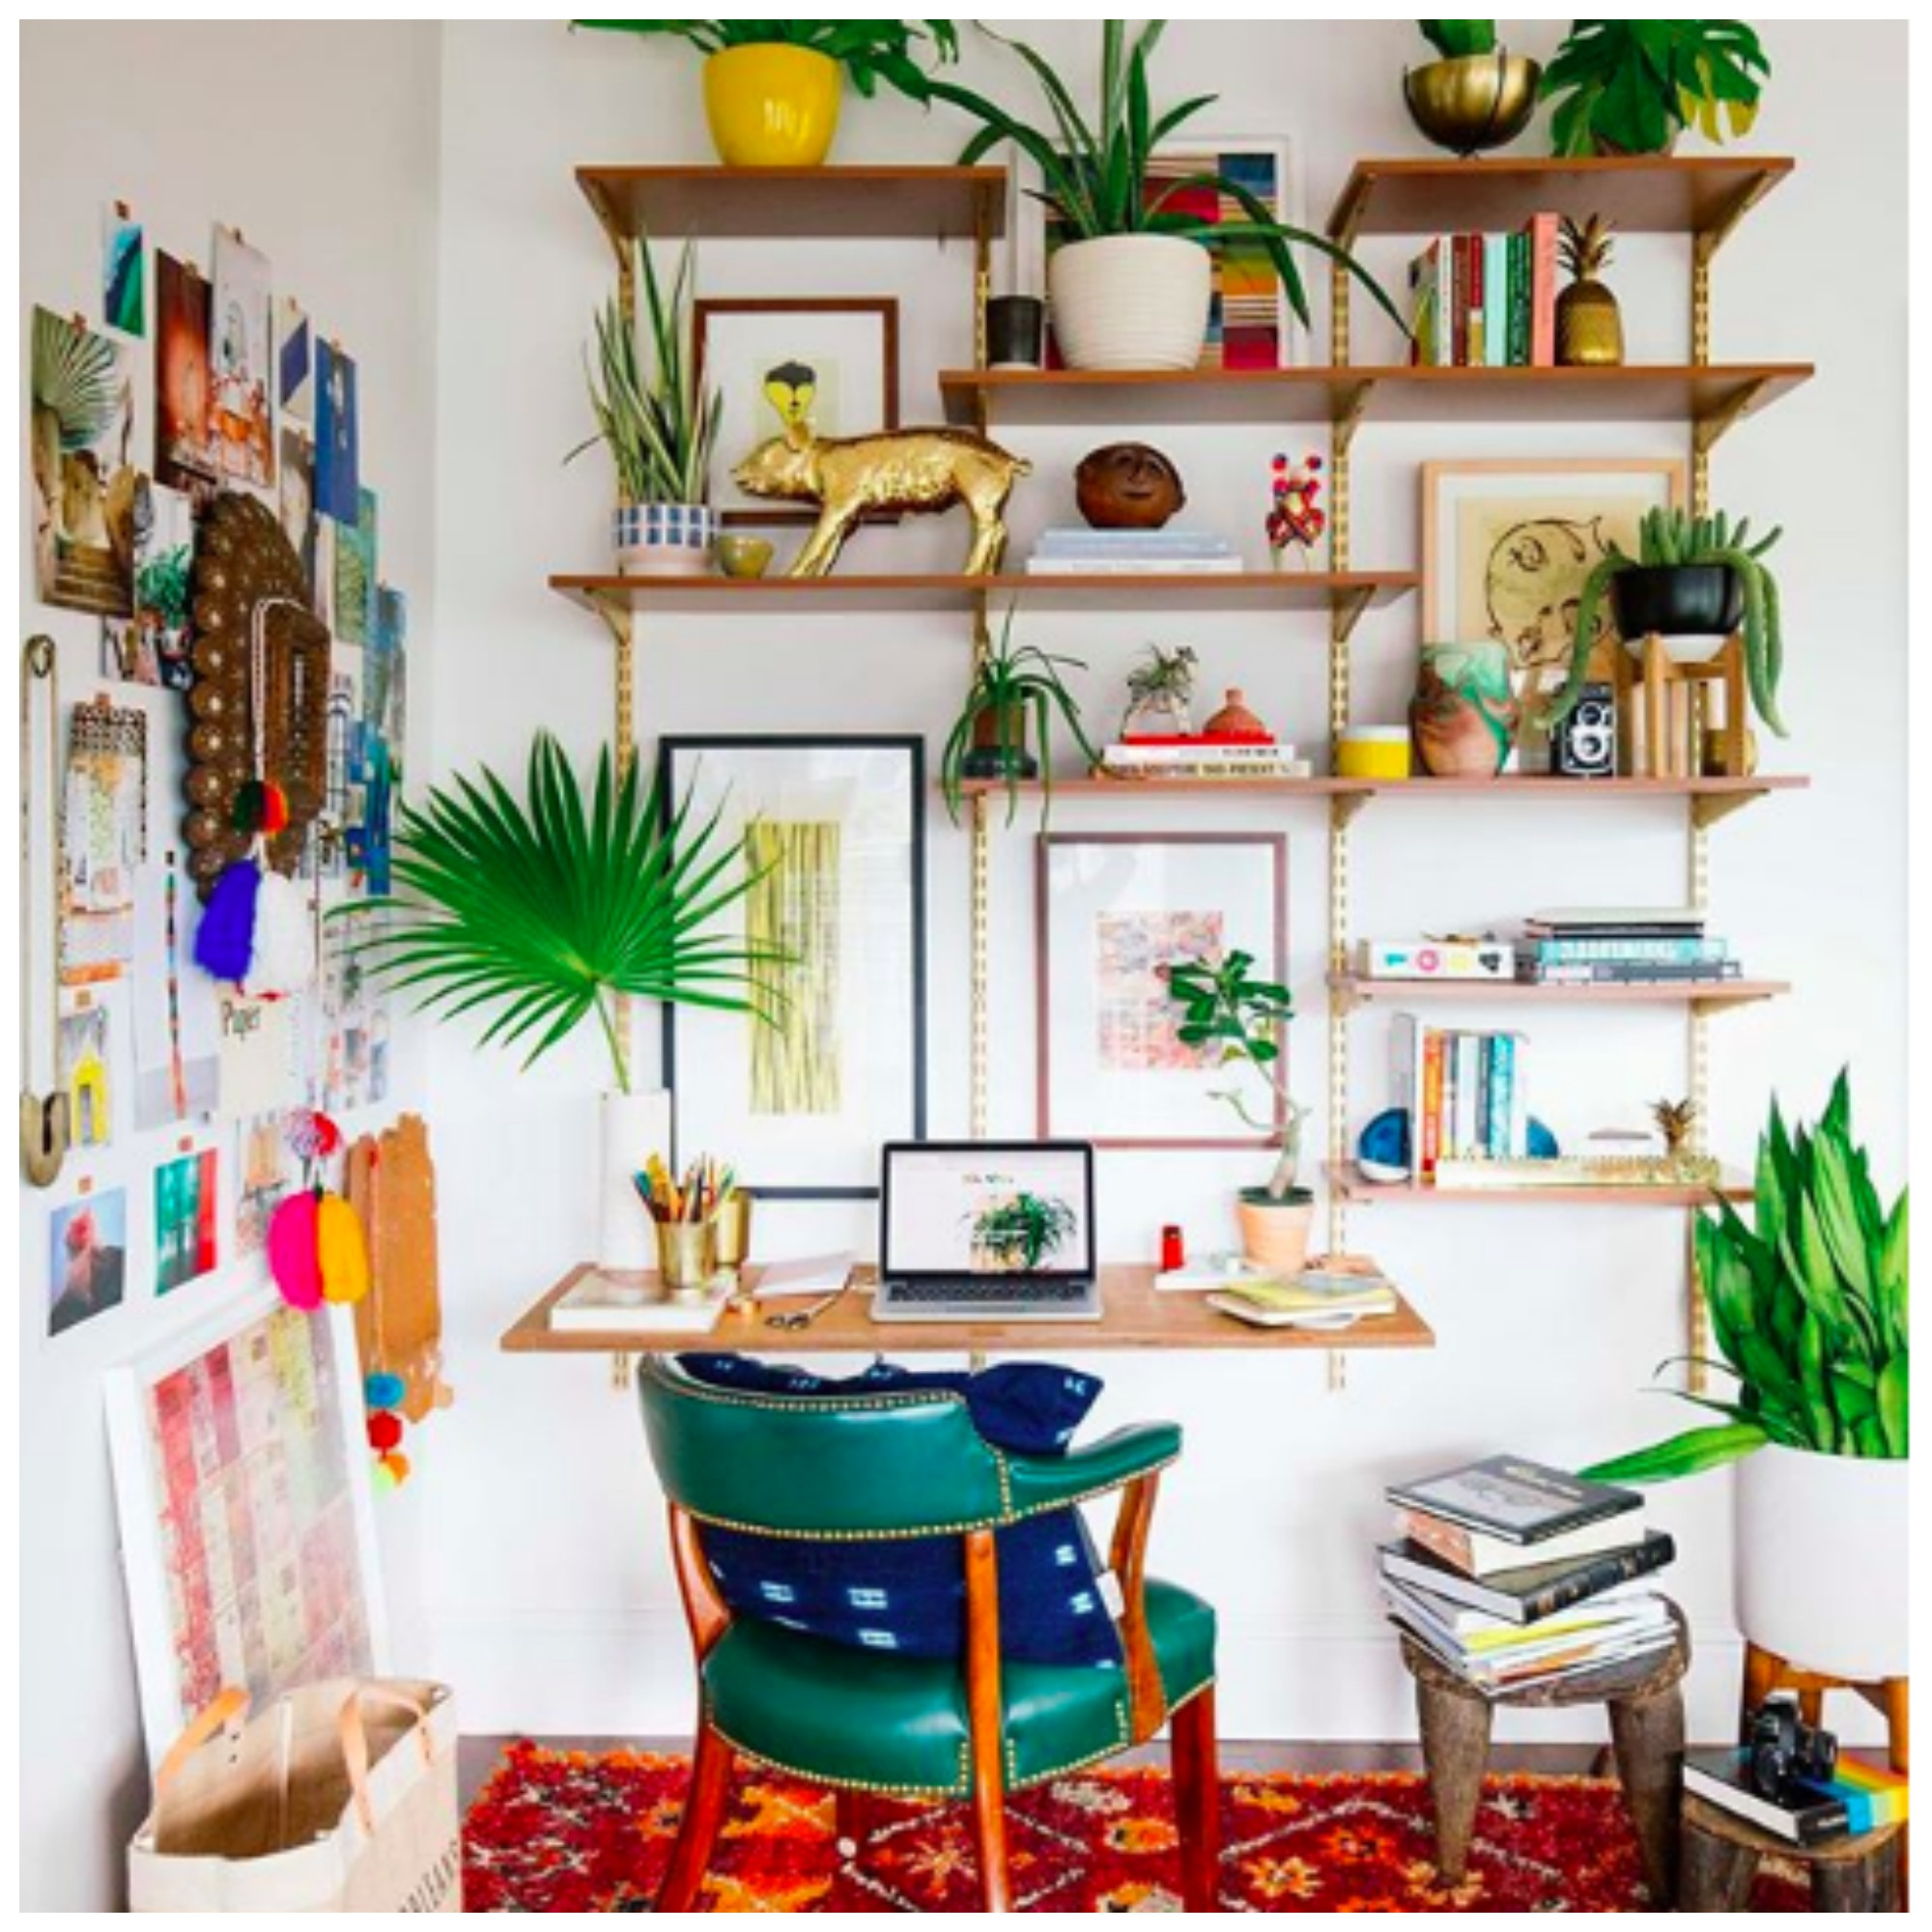 Home Tour: Dabito's Eclectic Ebay Gathered Colorful Cozy Home's